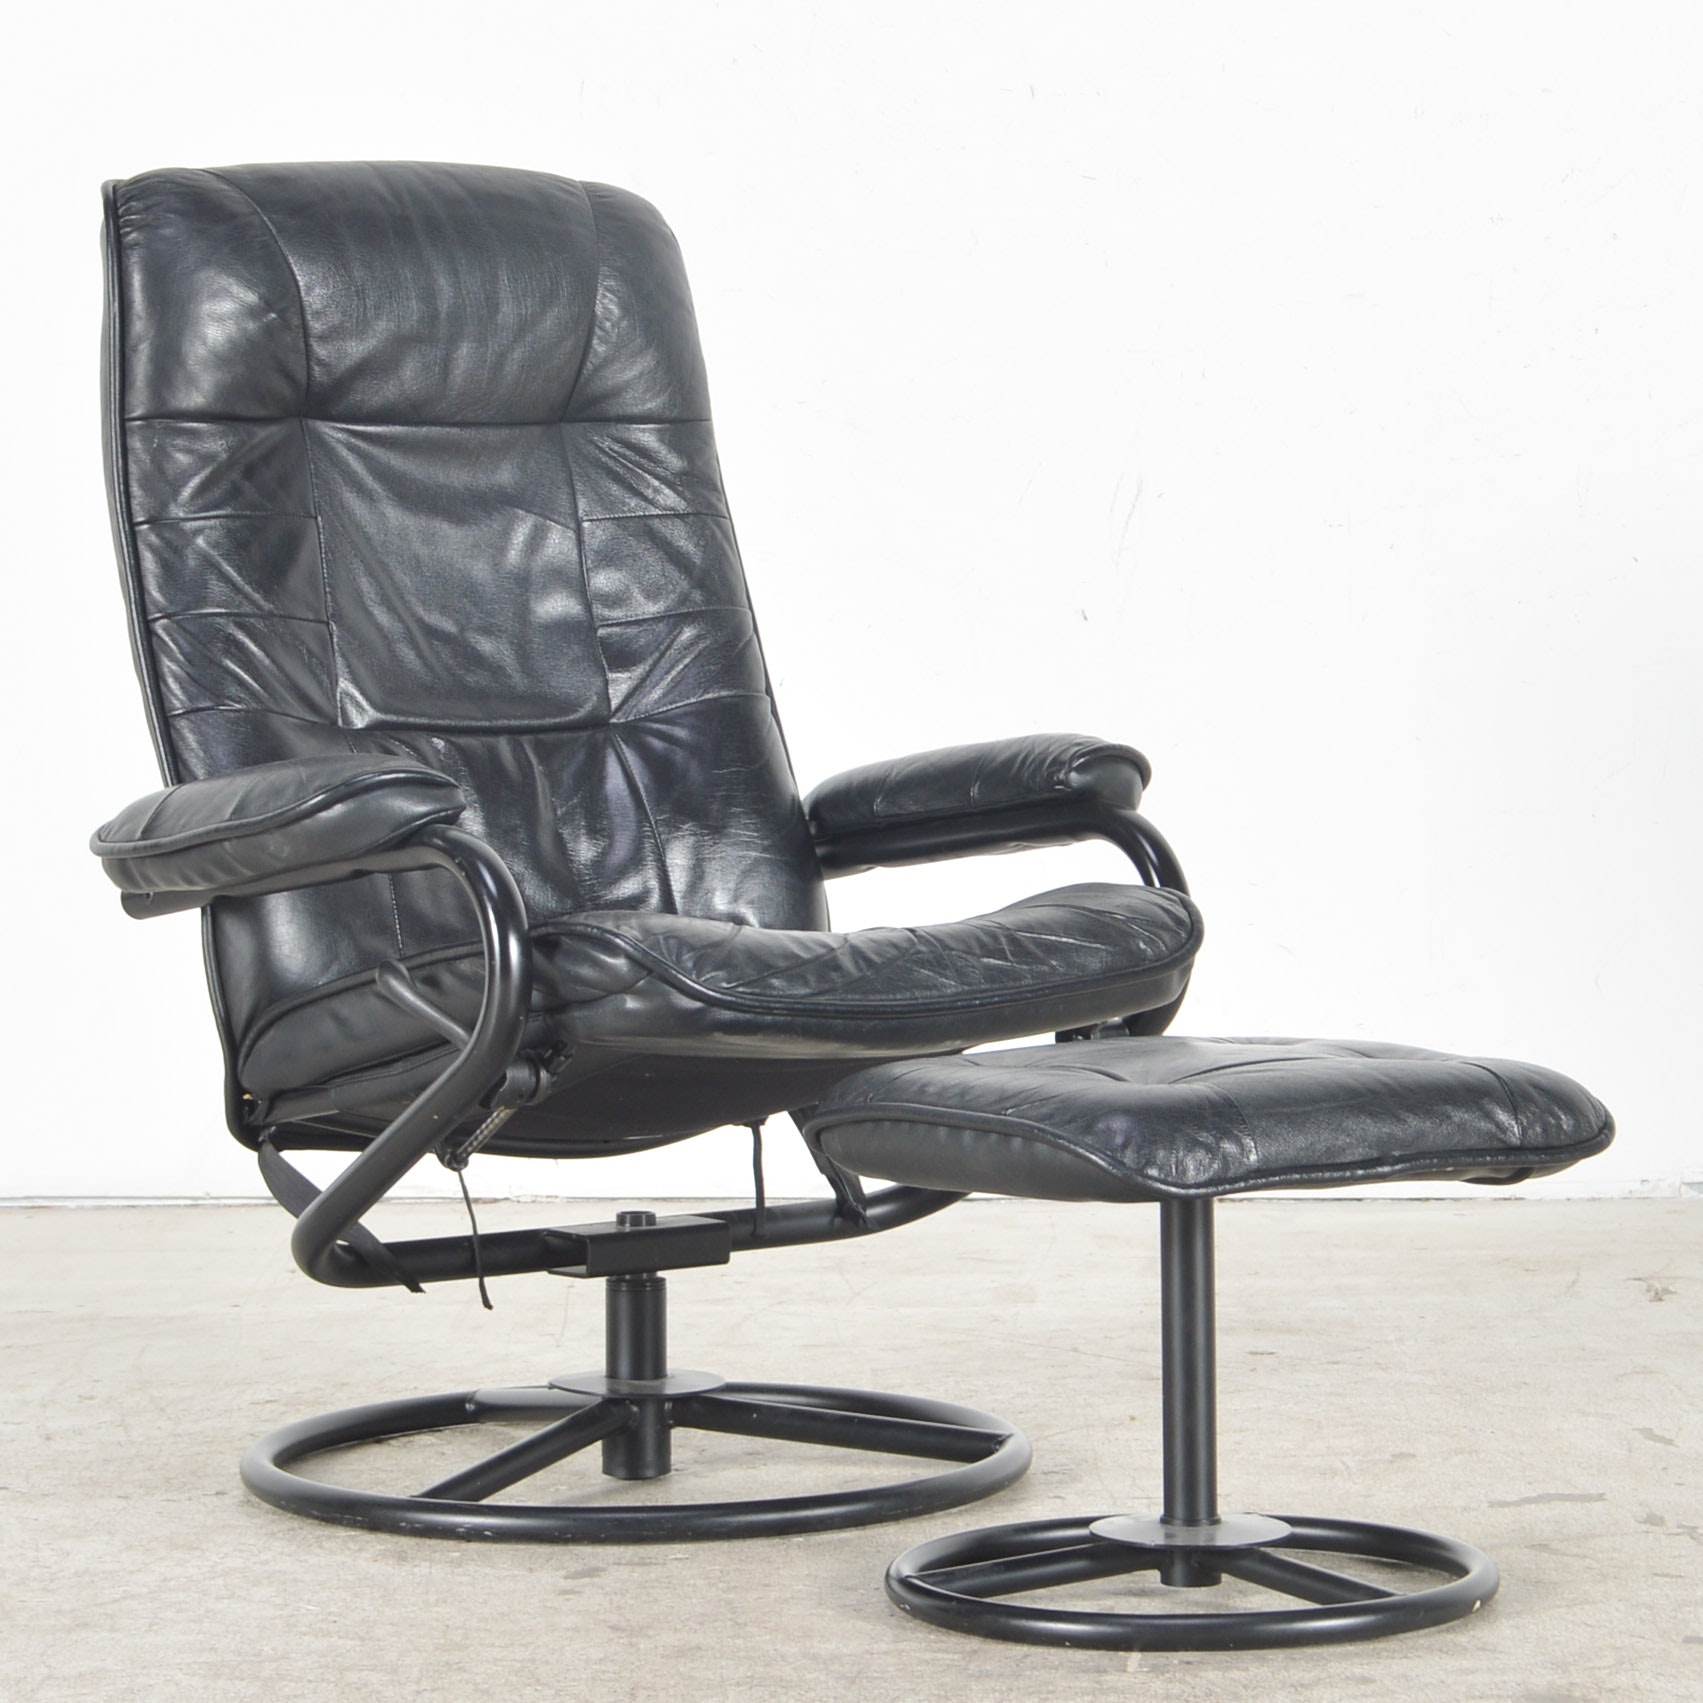 ChairWorks Reclining Leather Lounge Chair With Ottoman ...  sc 1 st  Everything But The House & ChairWorks Reclining Leather Lounge Chair With Ottoman : EBTH islam-shia.org